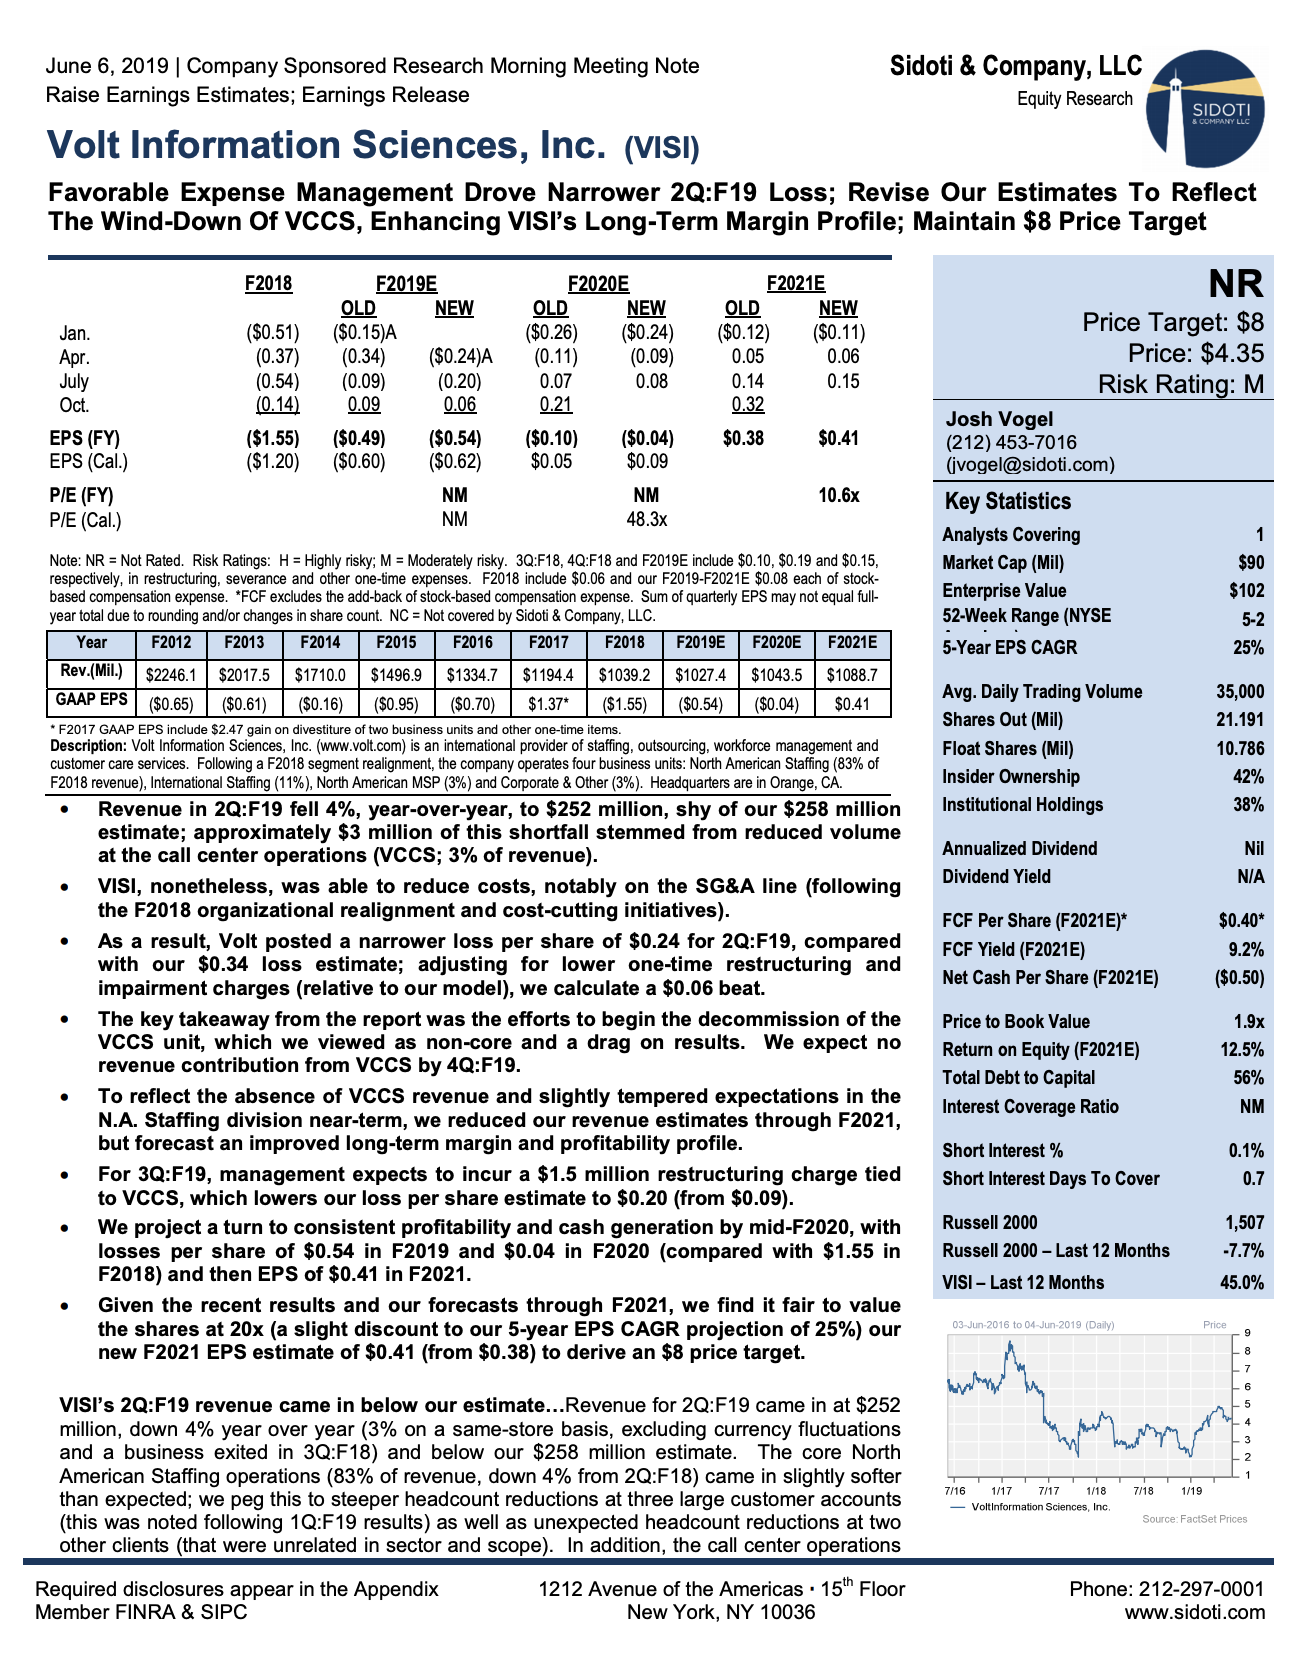 Earnings Release: June 6, 2019